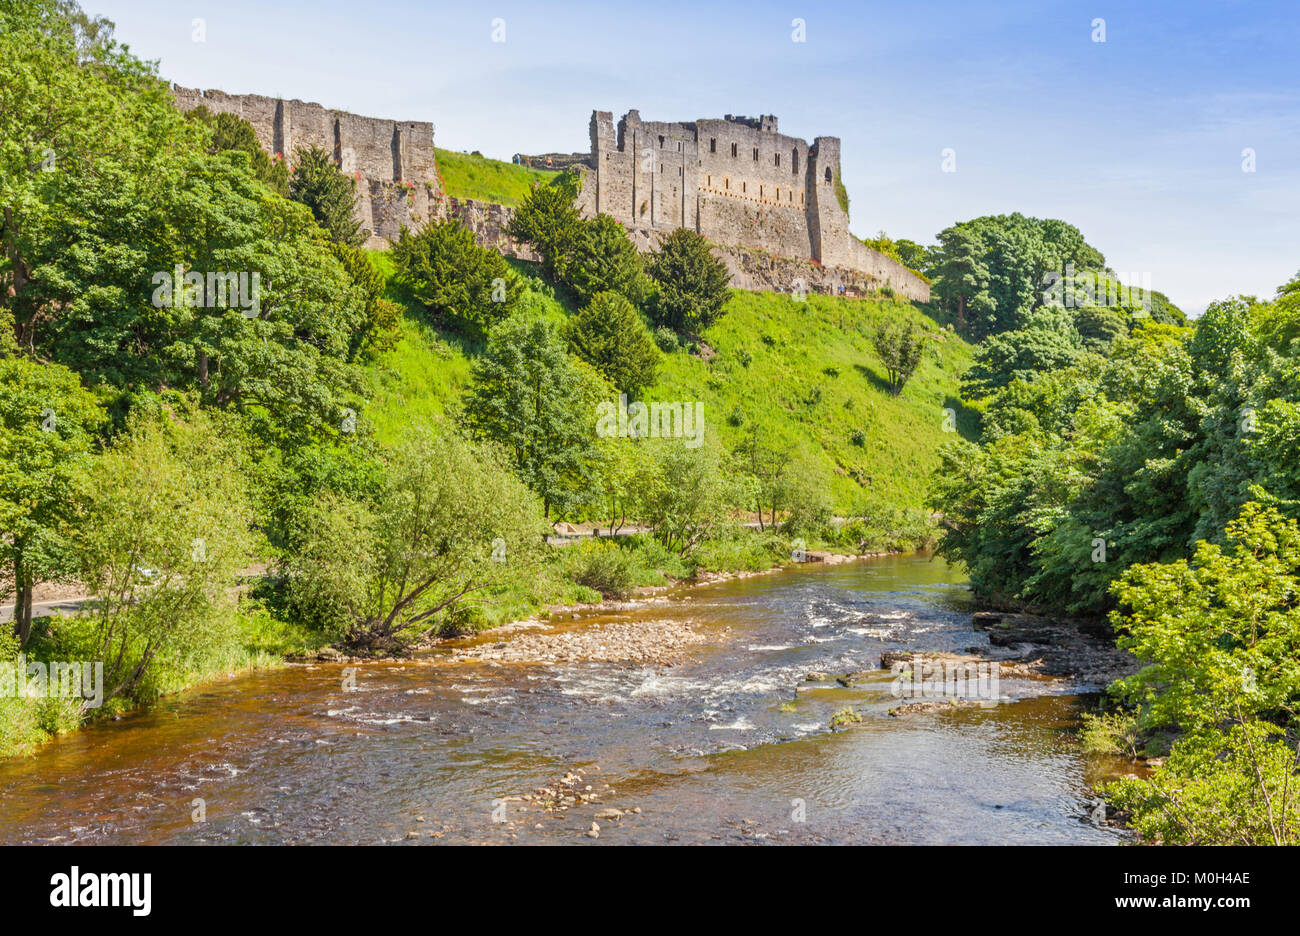 A view of the imposing Richmond Castle in Yorkshire, England, with the River Swale in the foreground. - Stock Image